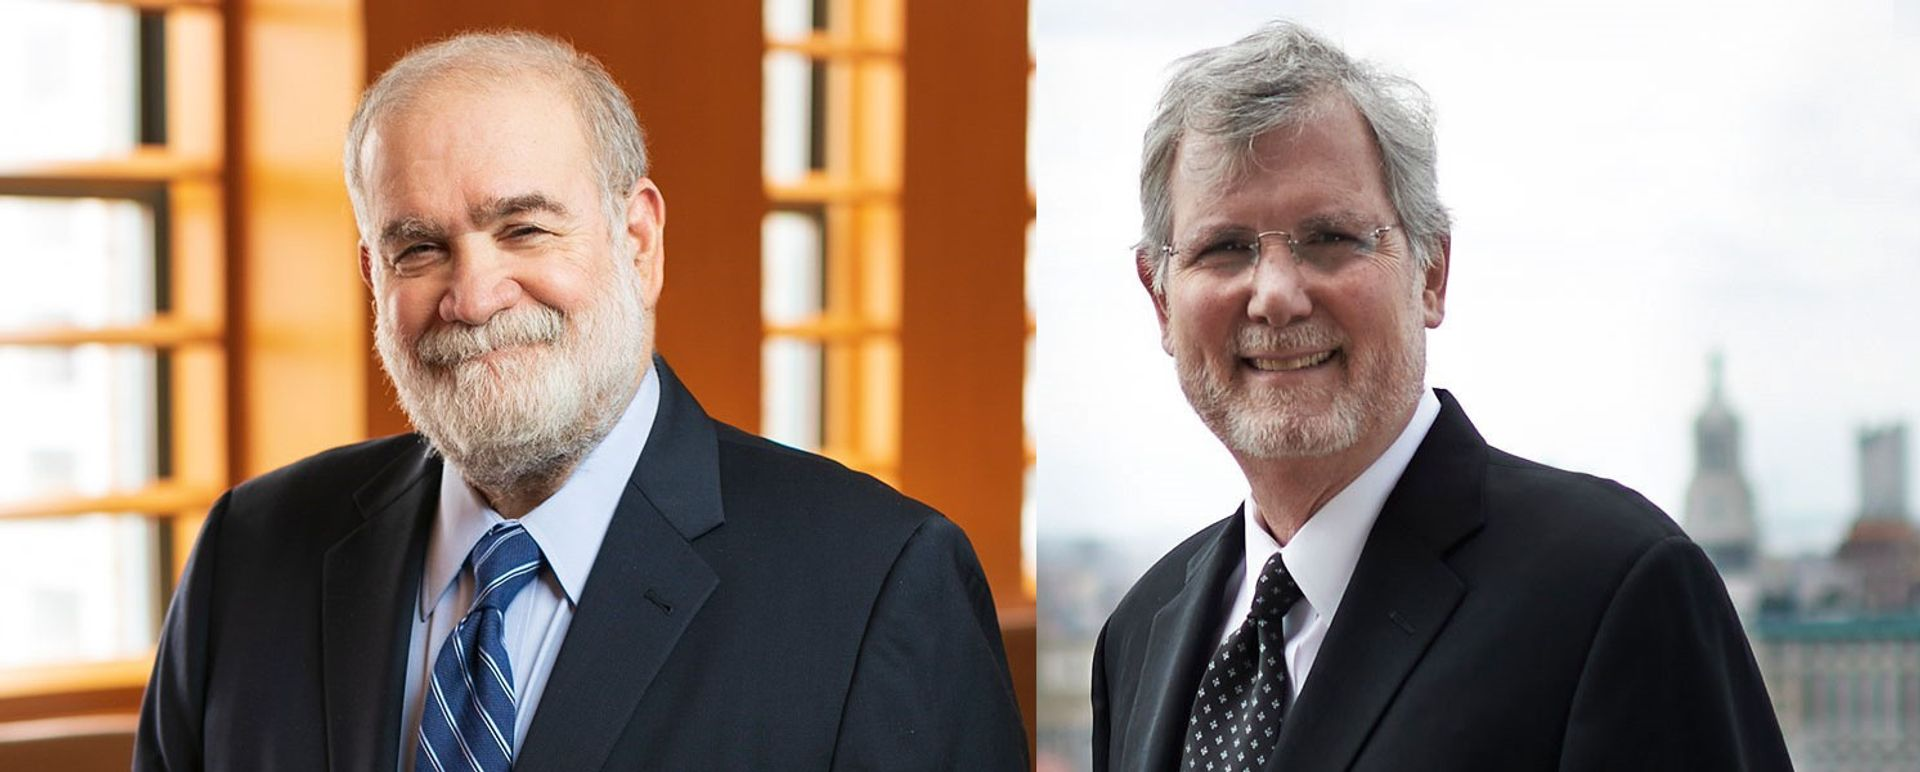 Larry Kaye and Howard Spiegler have more than 30 years of experience in art litigation at Herrick